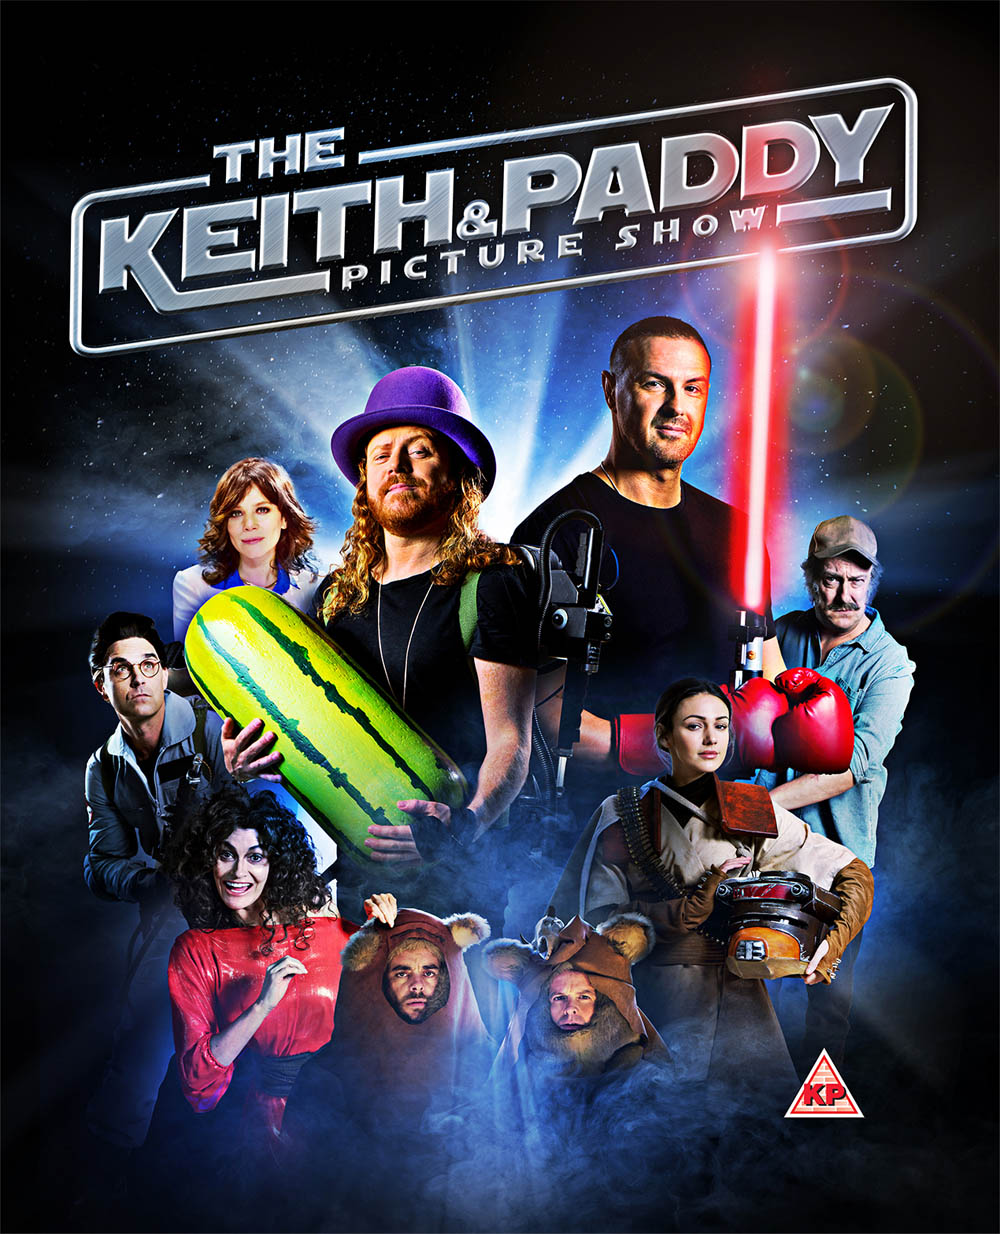 This image is strictly embargoed until 00.01 Thursday 27th April 2017